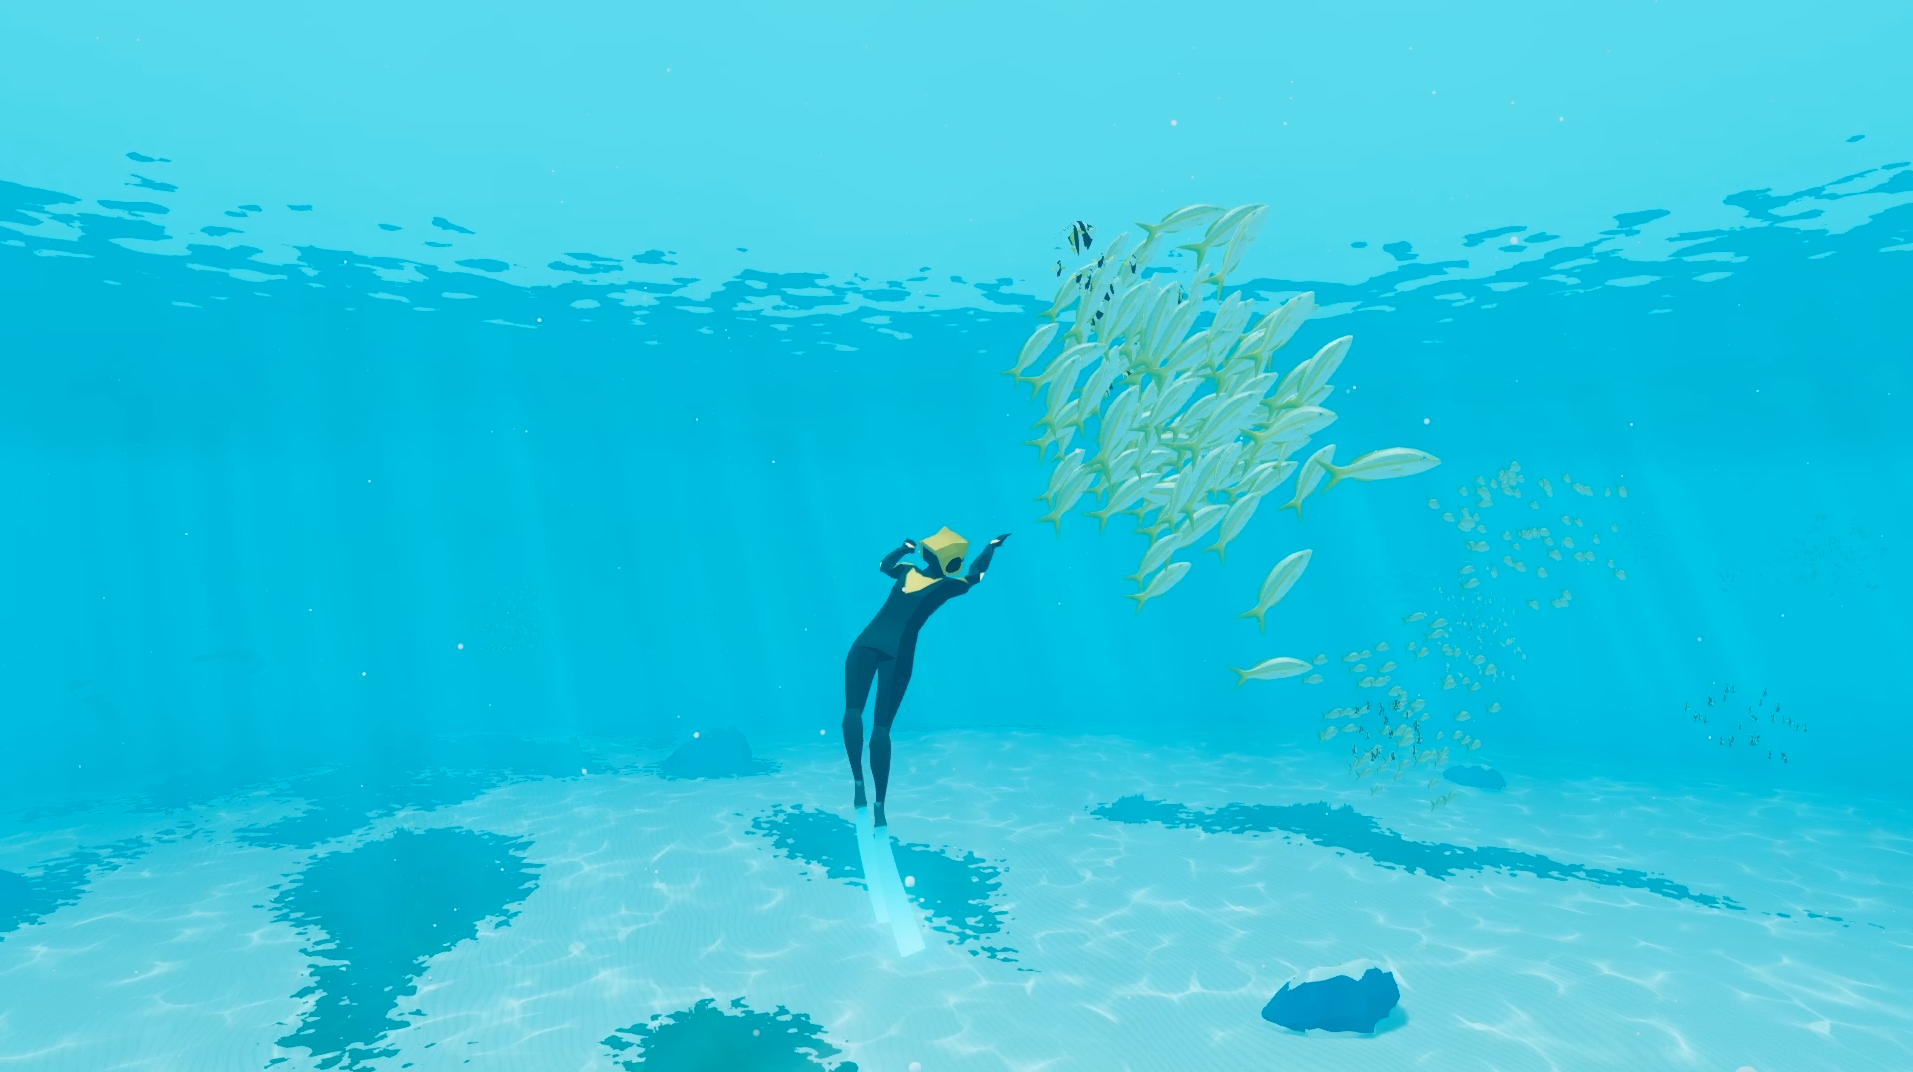 Fish and other creatures will interact with the diver.